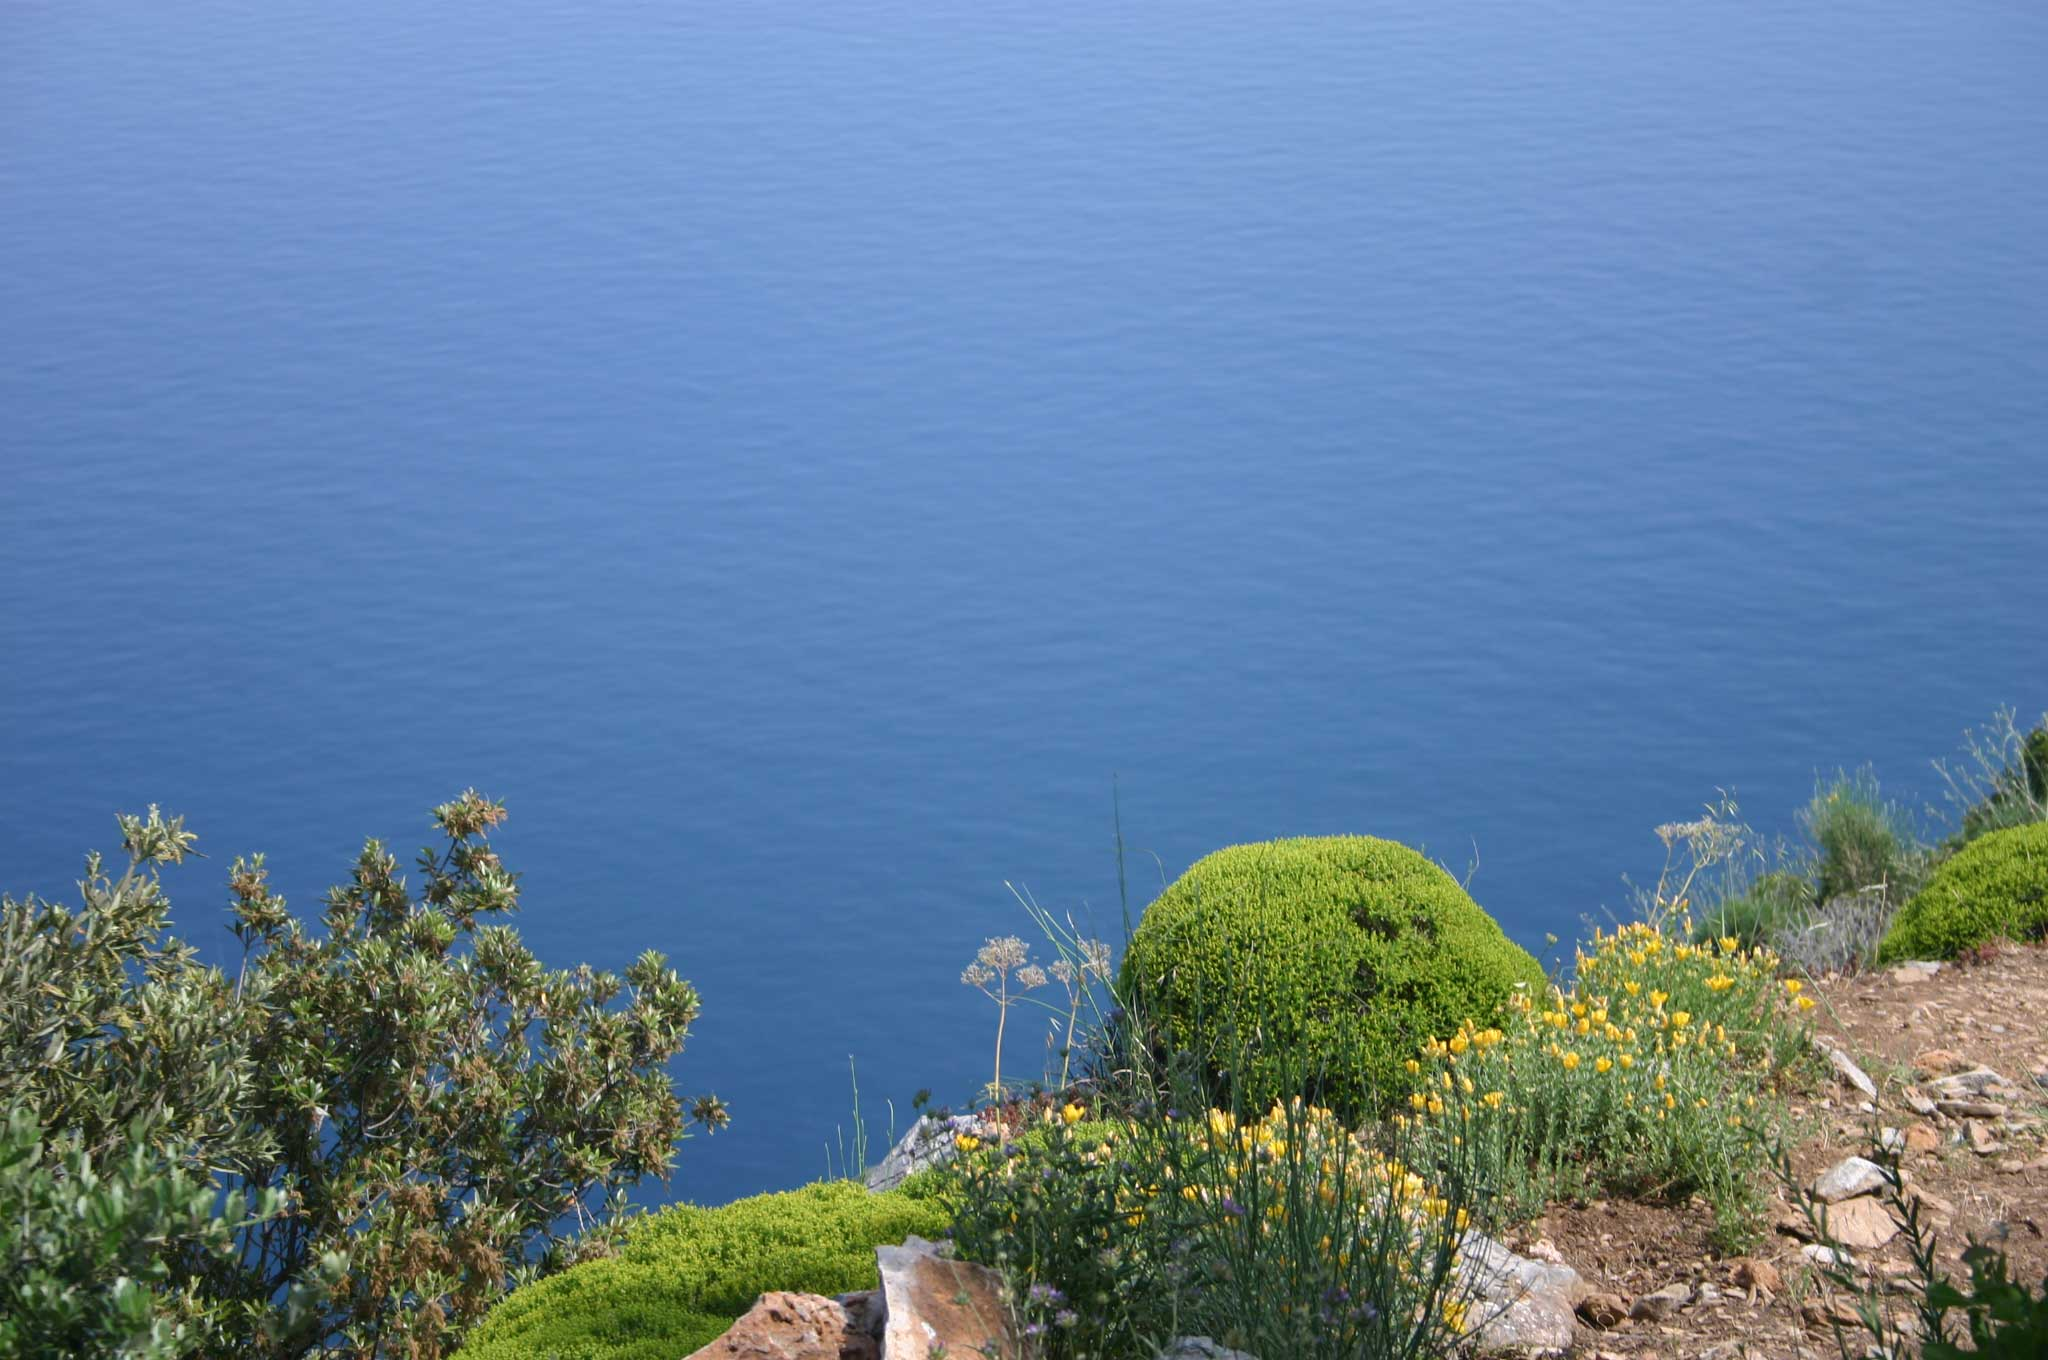 Mount Athos: Mt Athos - South coast vegetation - © William Mackesy